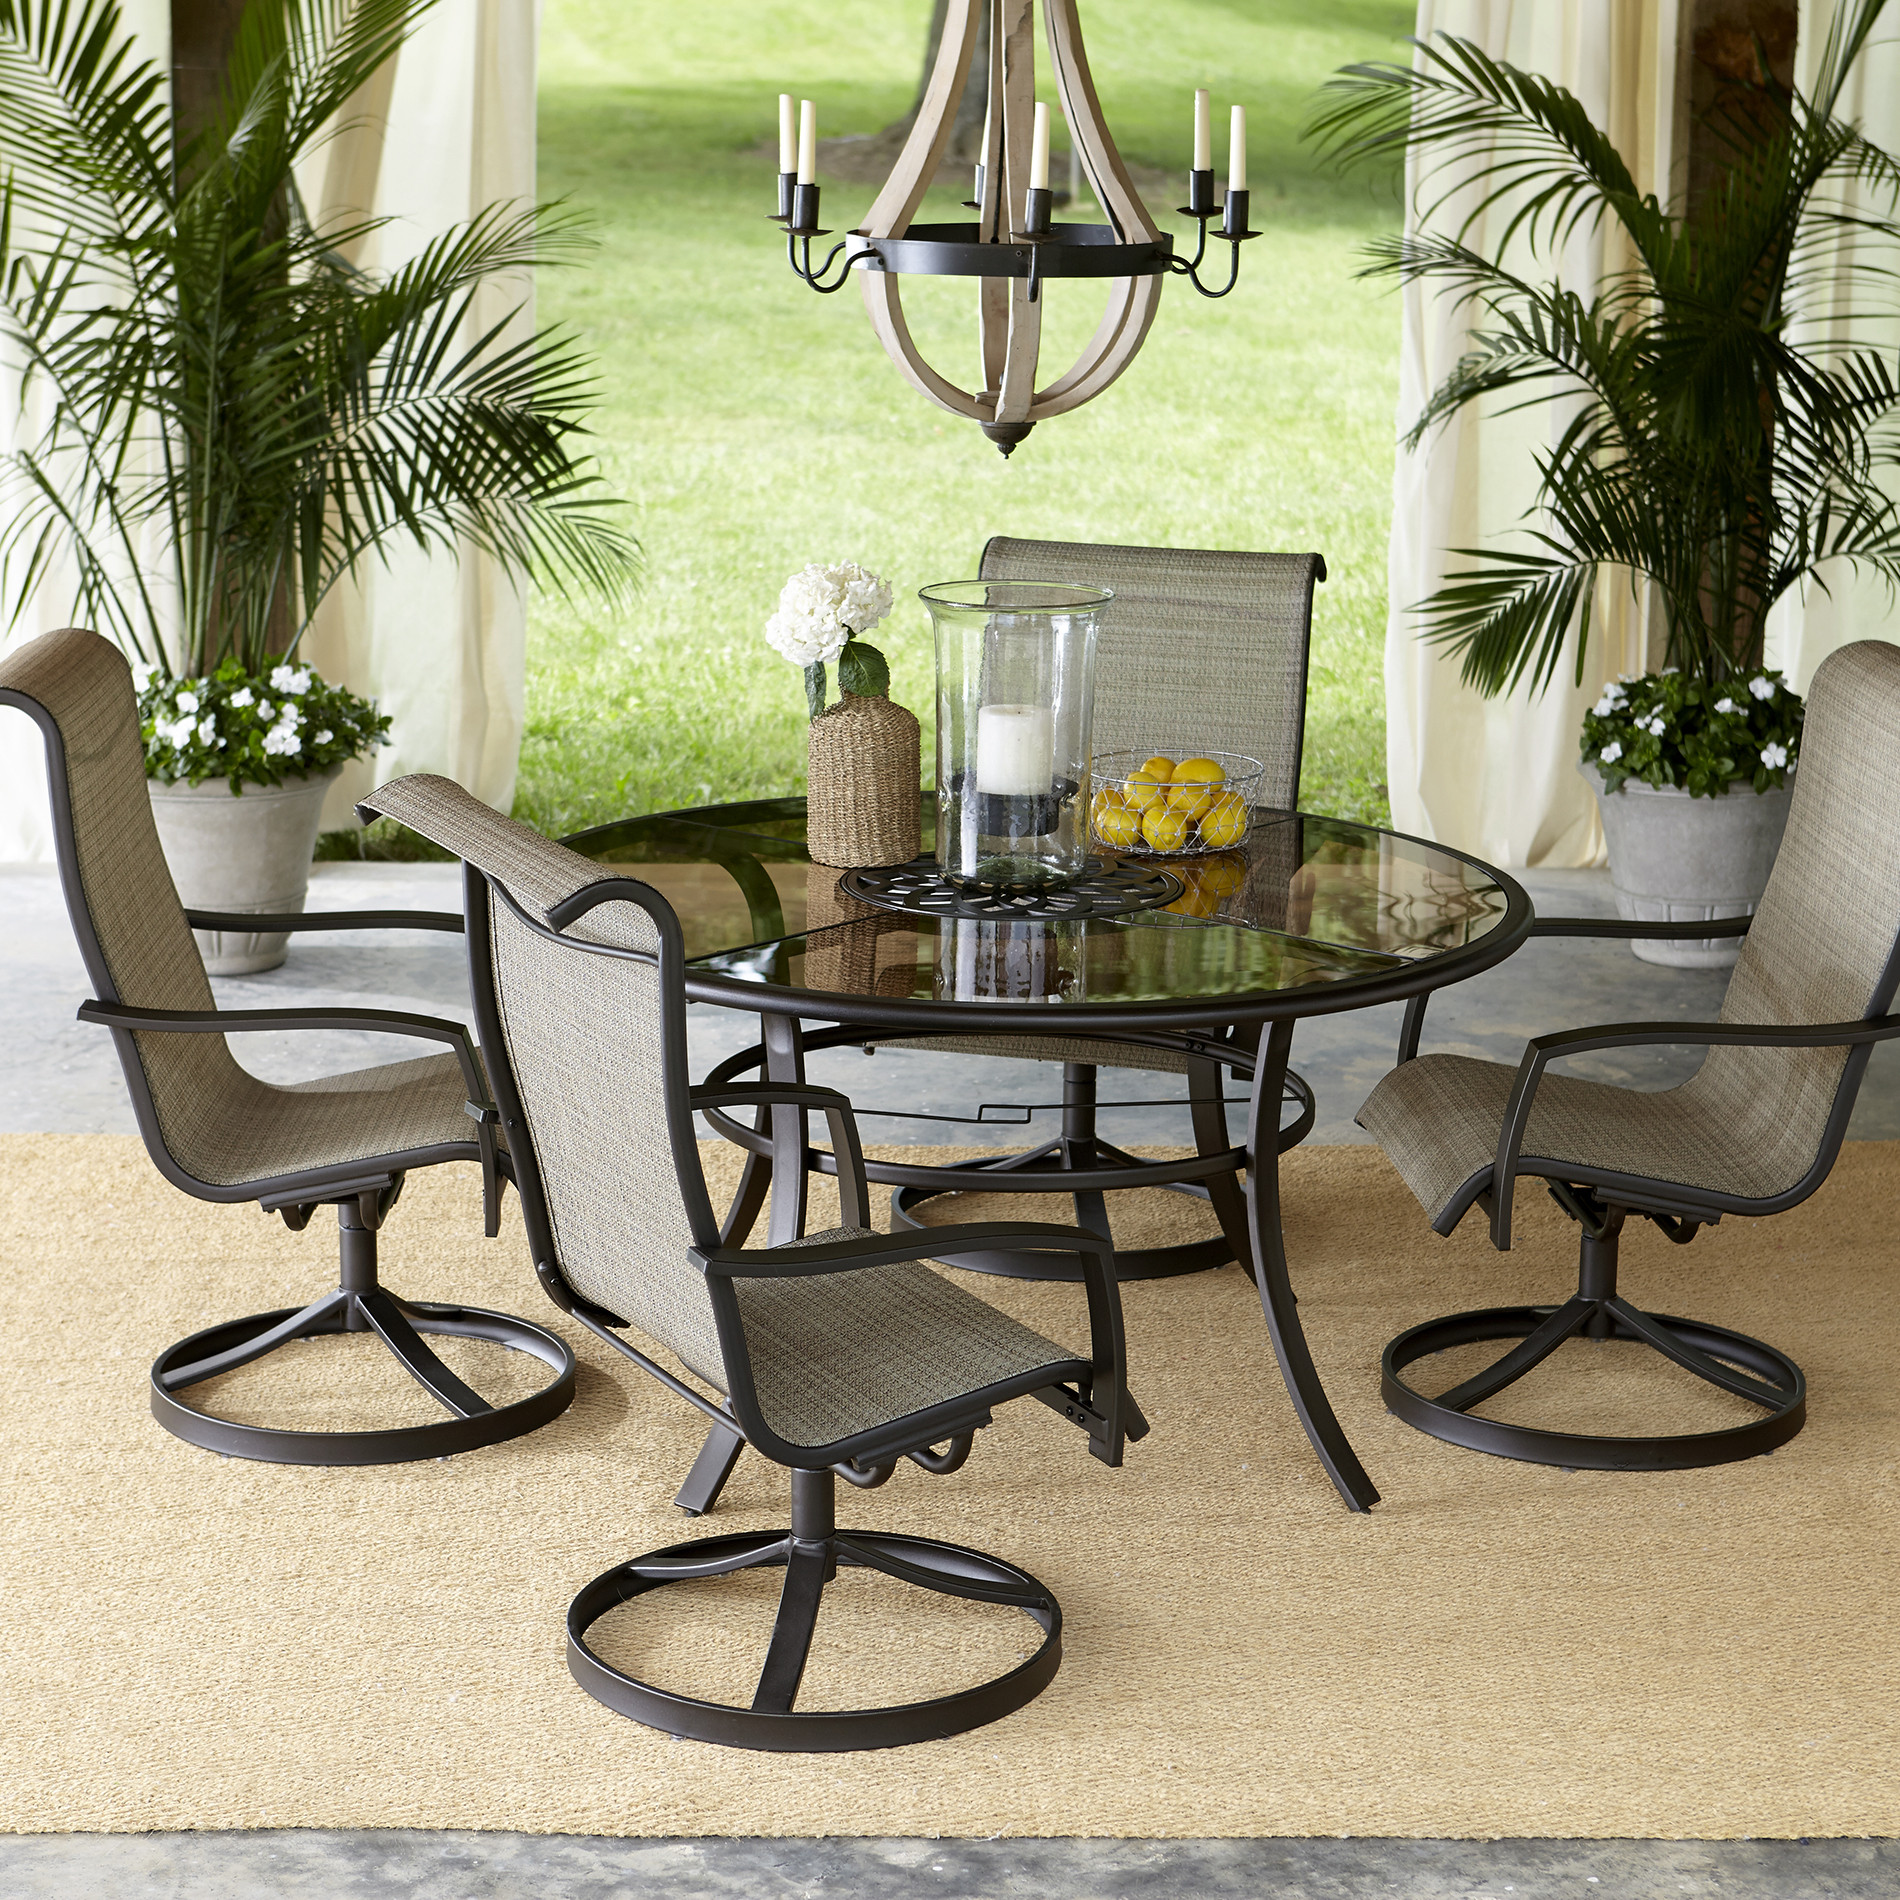 Best ideas about Outdoor Patio Dining Sets . Save or Pin Garden Oasis Providence 5 Piece Swivel Dining Set Now.